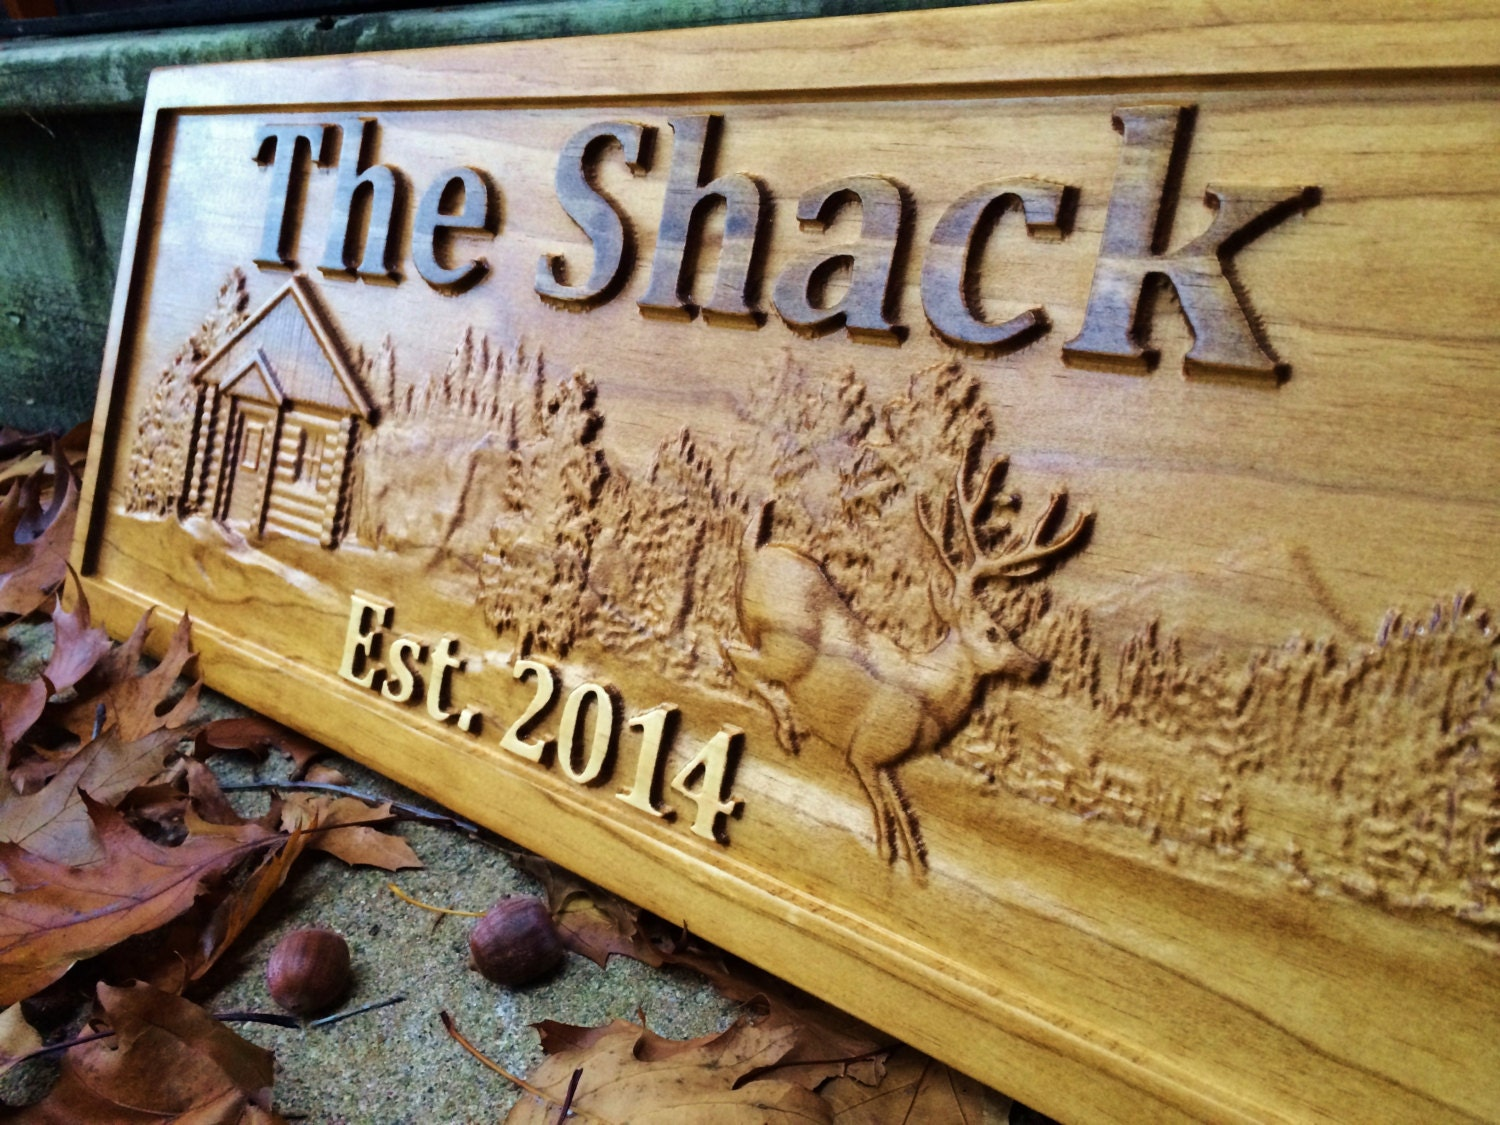 Personalized cabin sign custom wood sign rustic cabin decor - Custom signs for home decor concept ...